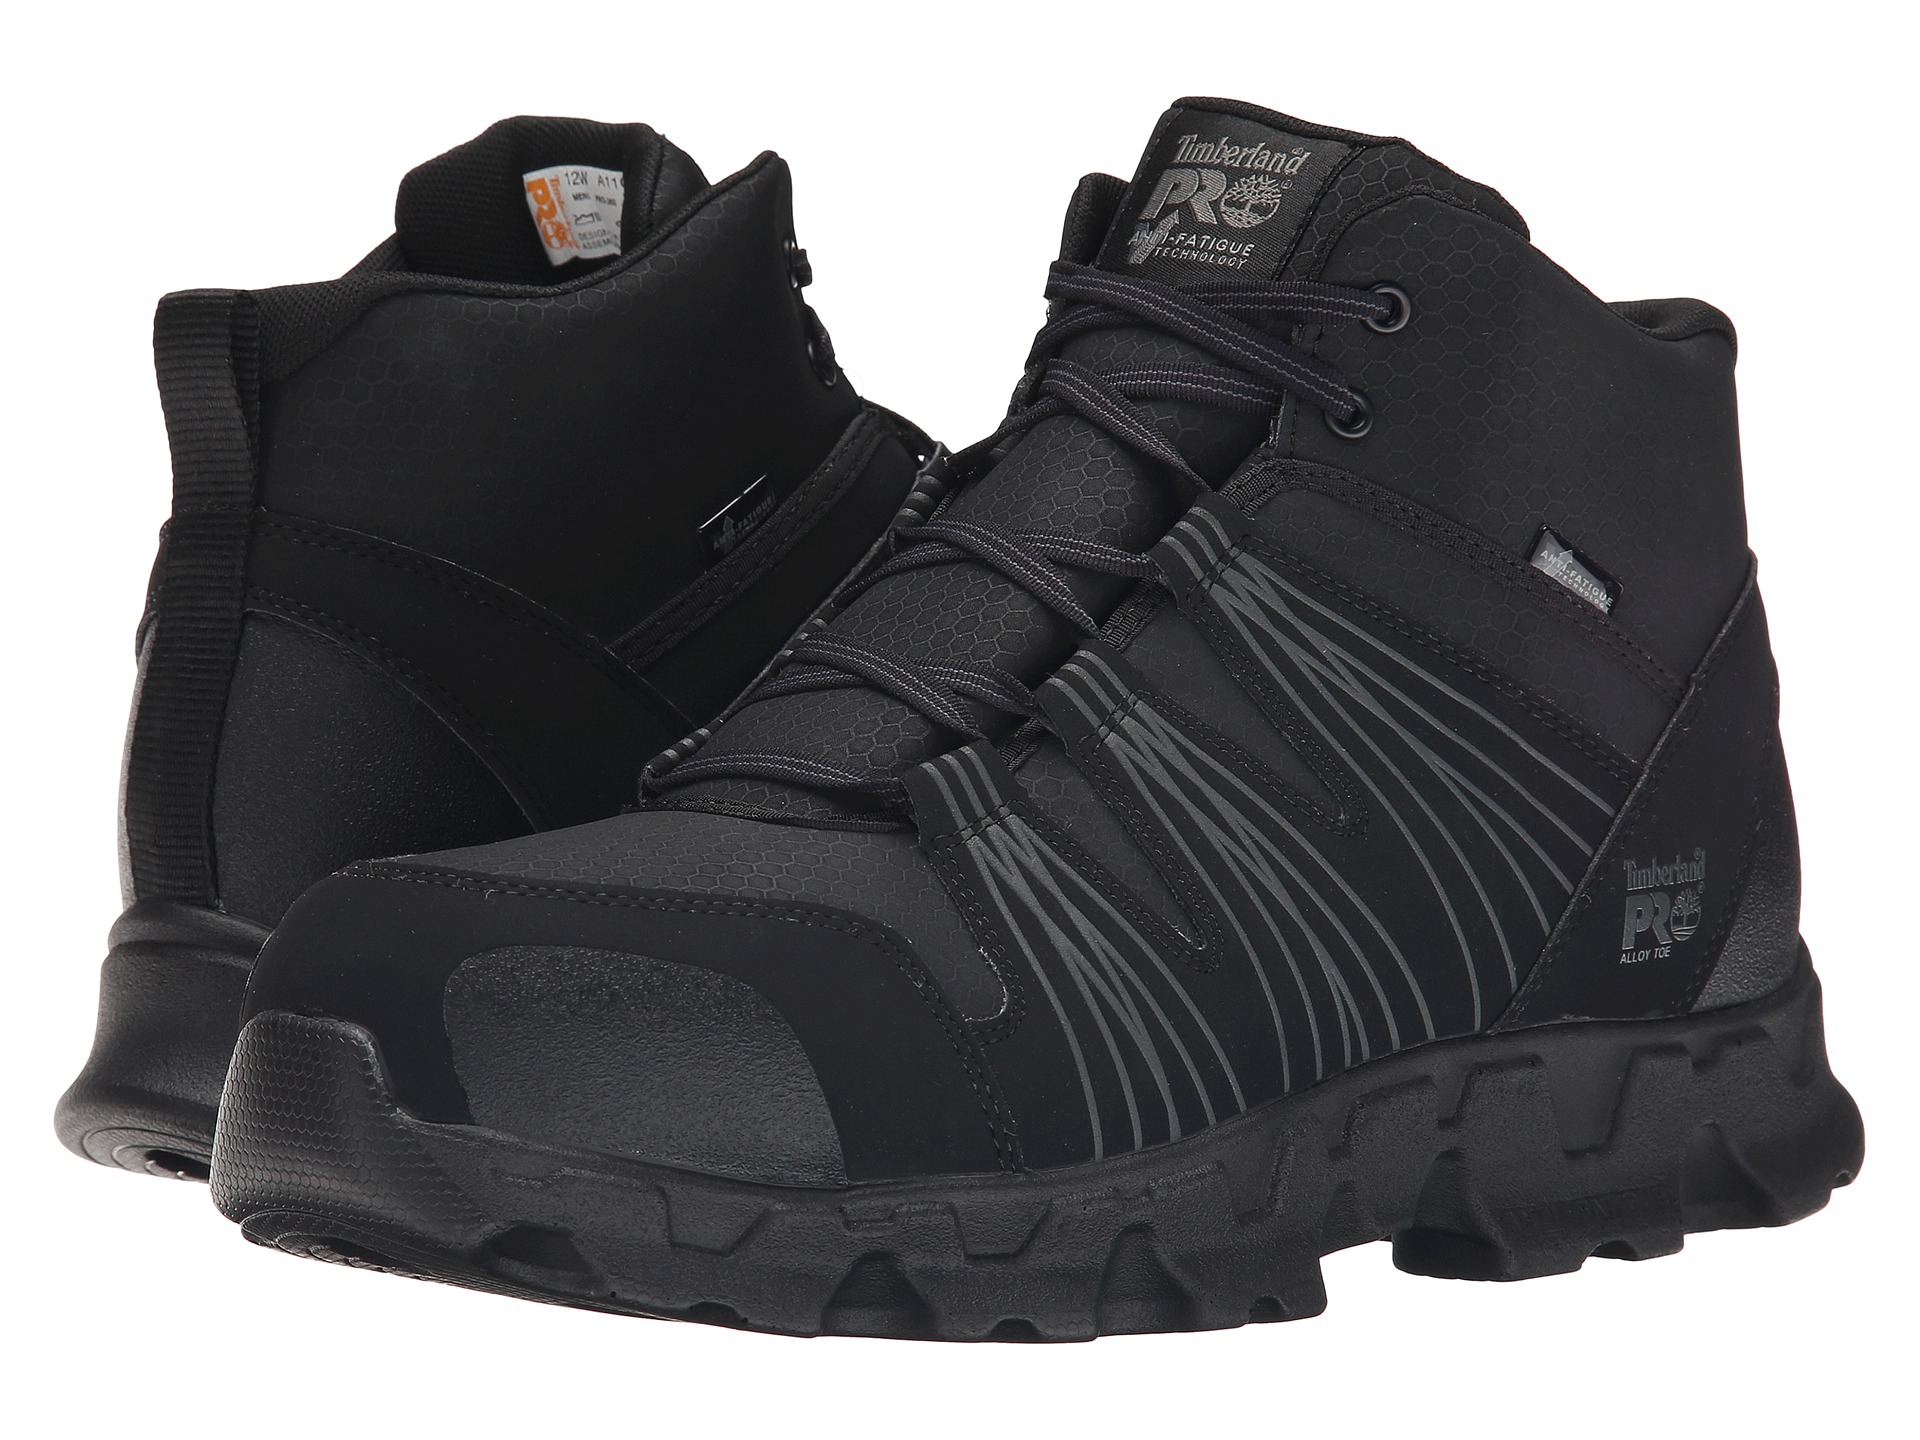 Timberland Powertrain Mid Alloy Safety Toe Esd In Black